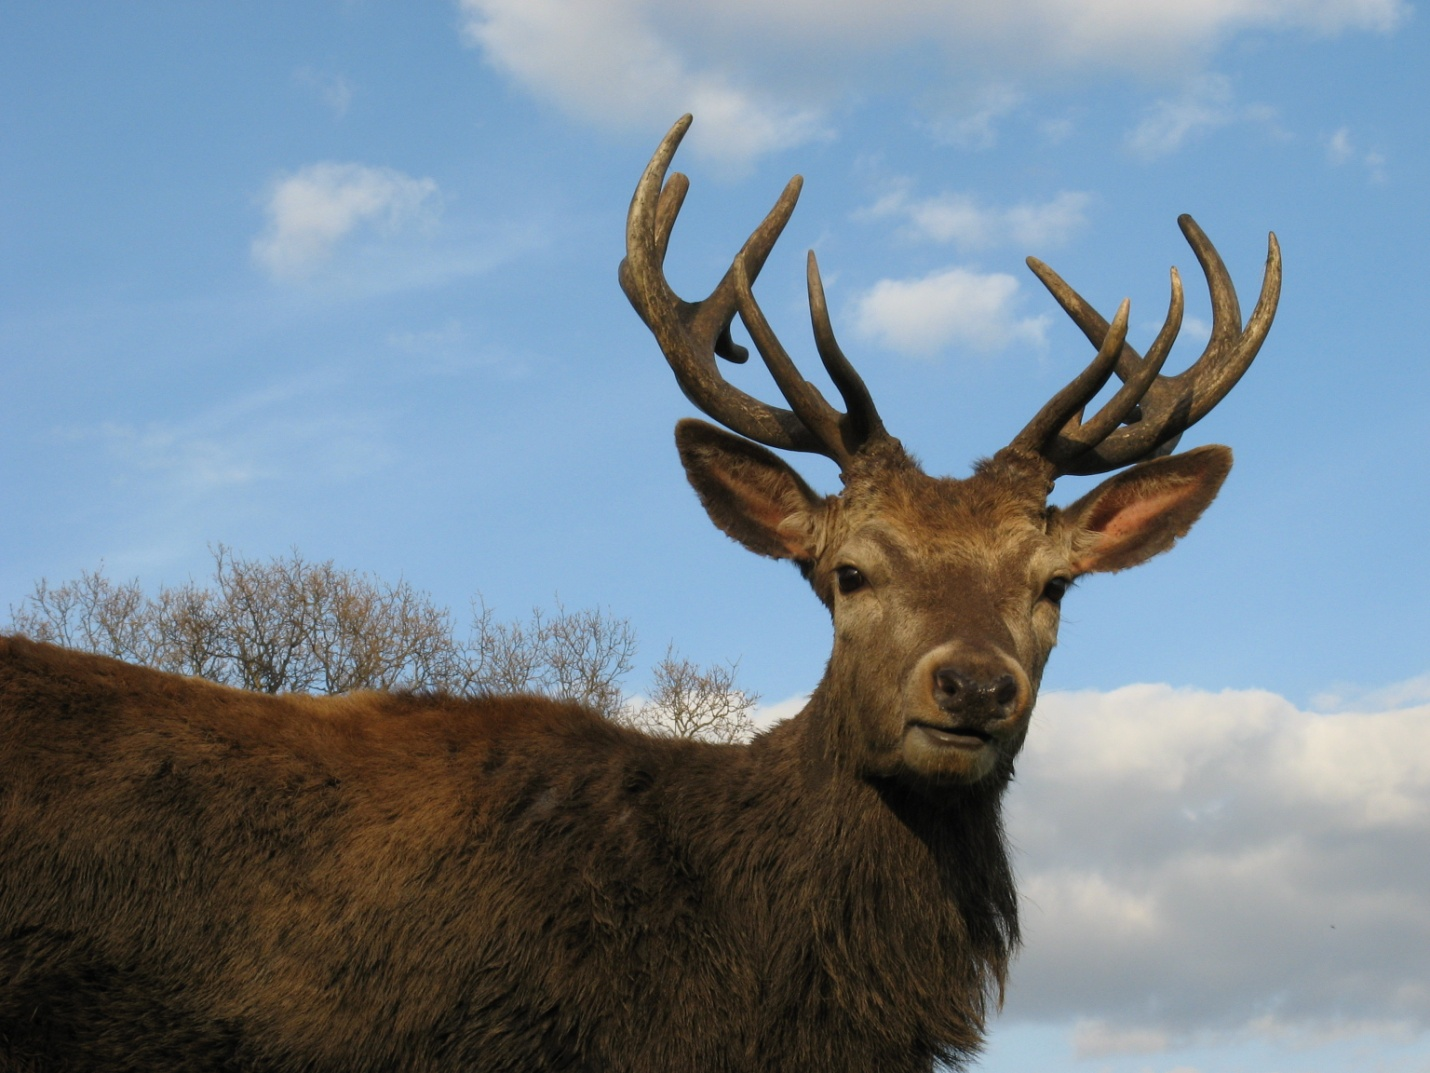 https://upload.wikimedia.org/wikipedia/commons/3/35/Red_Deer_Stag_Wollaton_Park.JPG